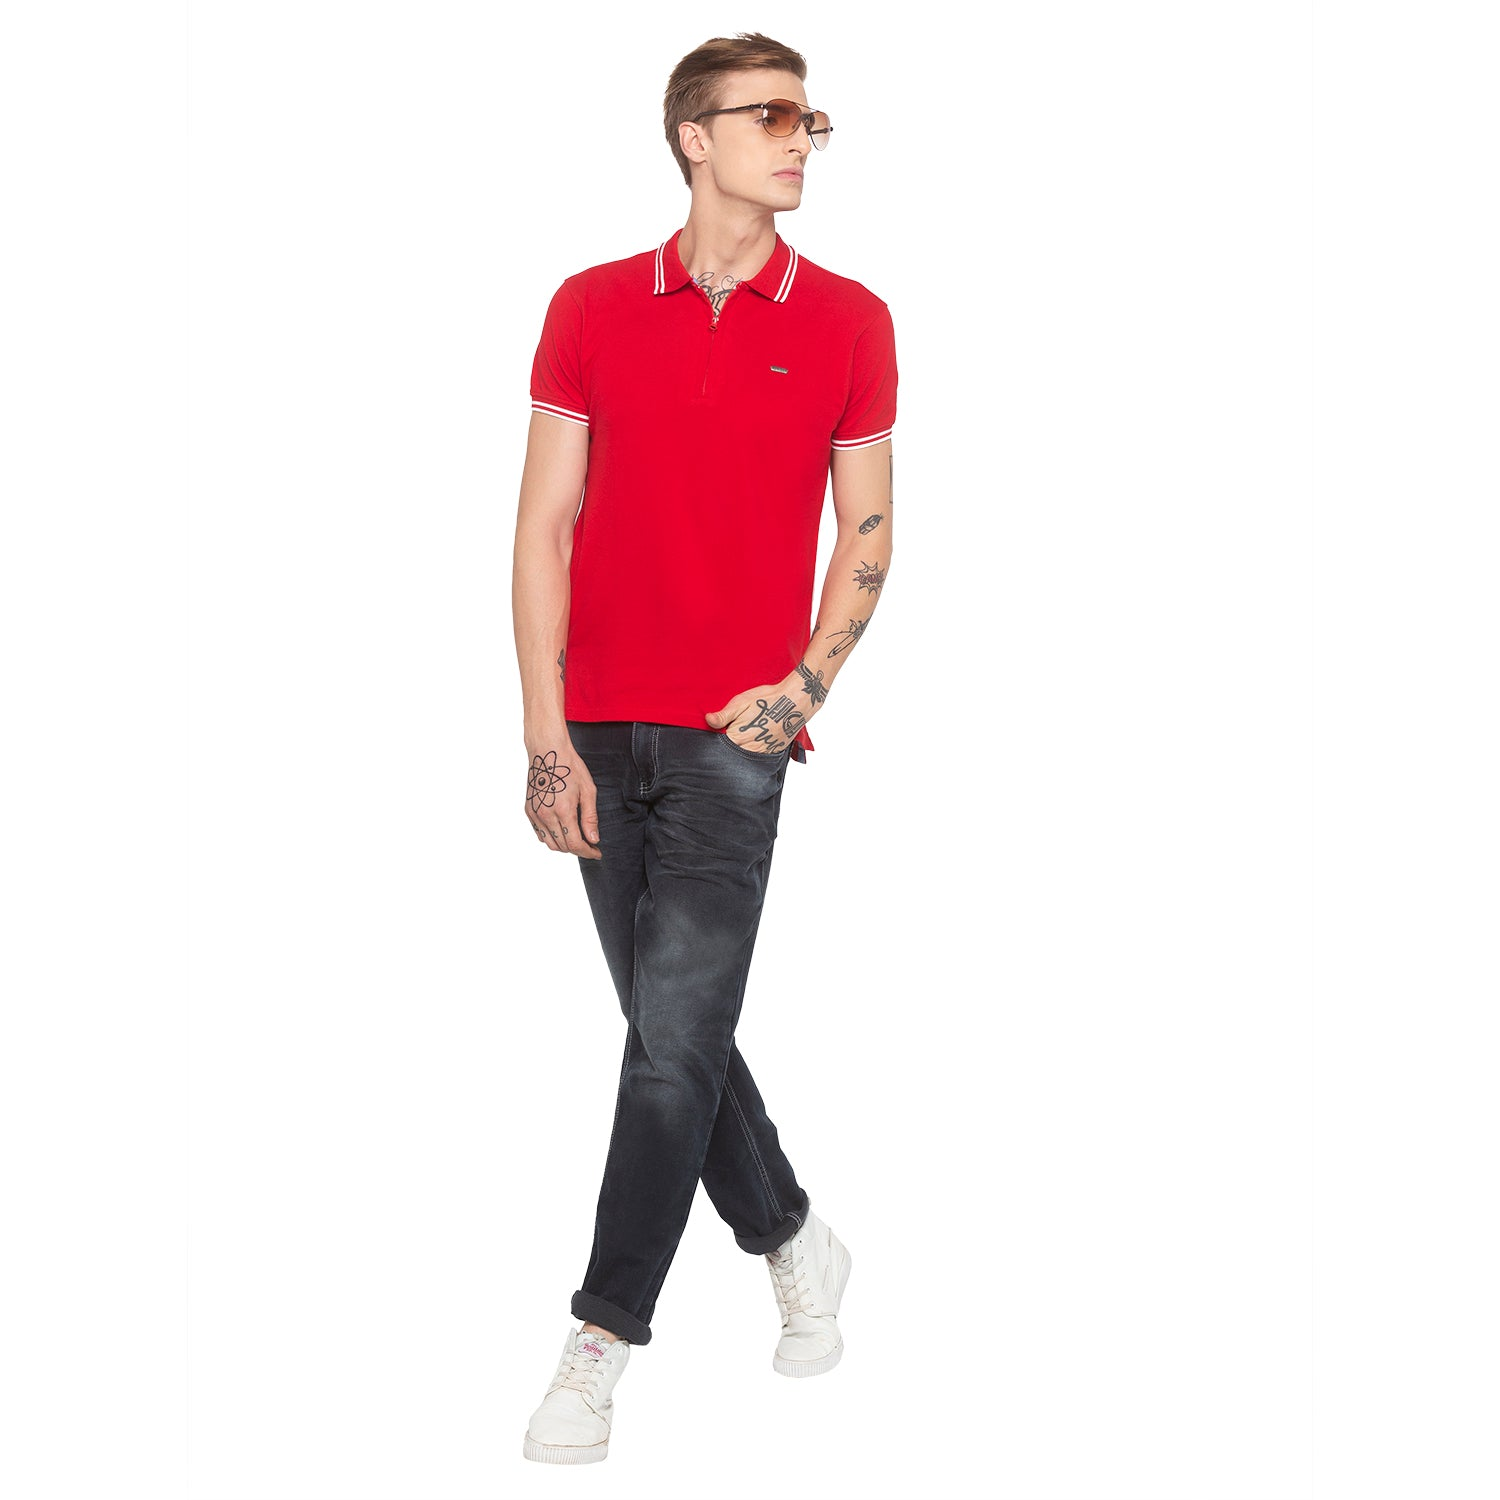 Zipper Polo Neck Solid Red T-shirt-4